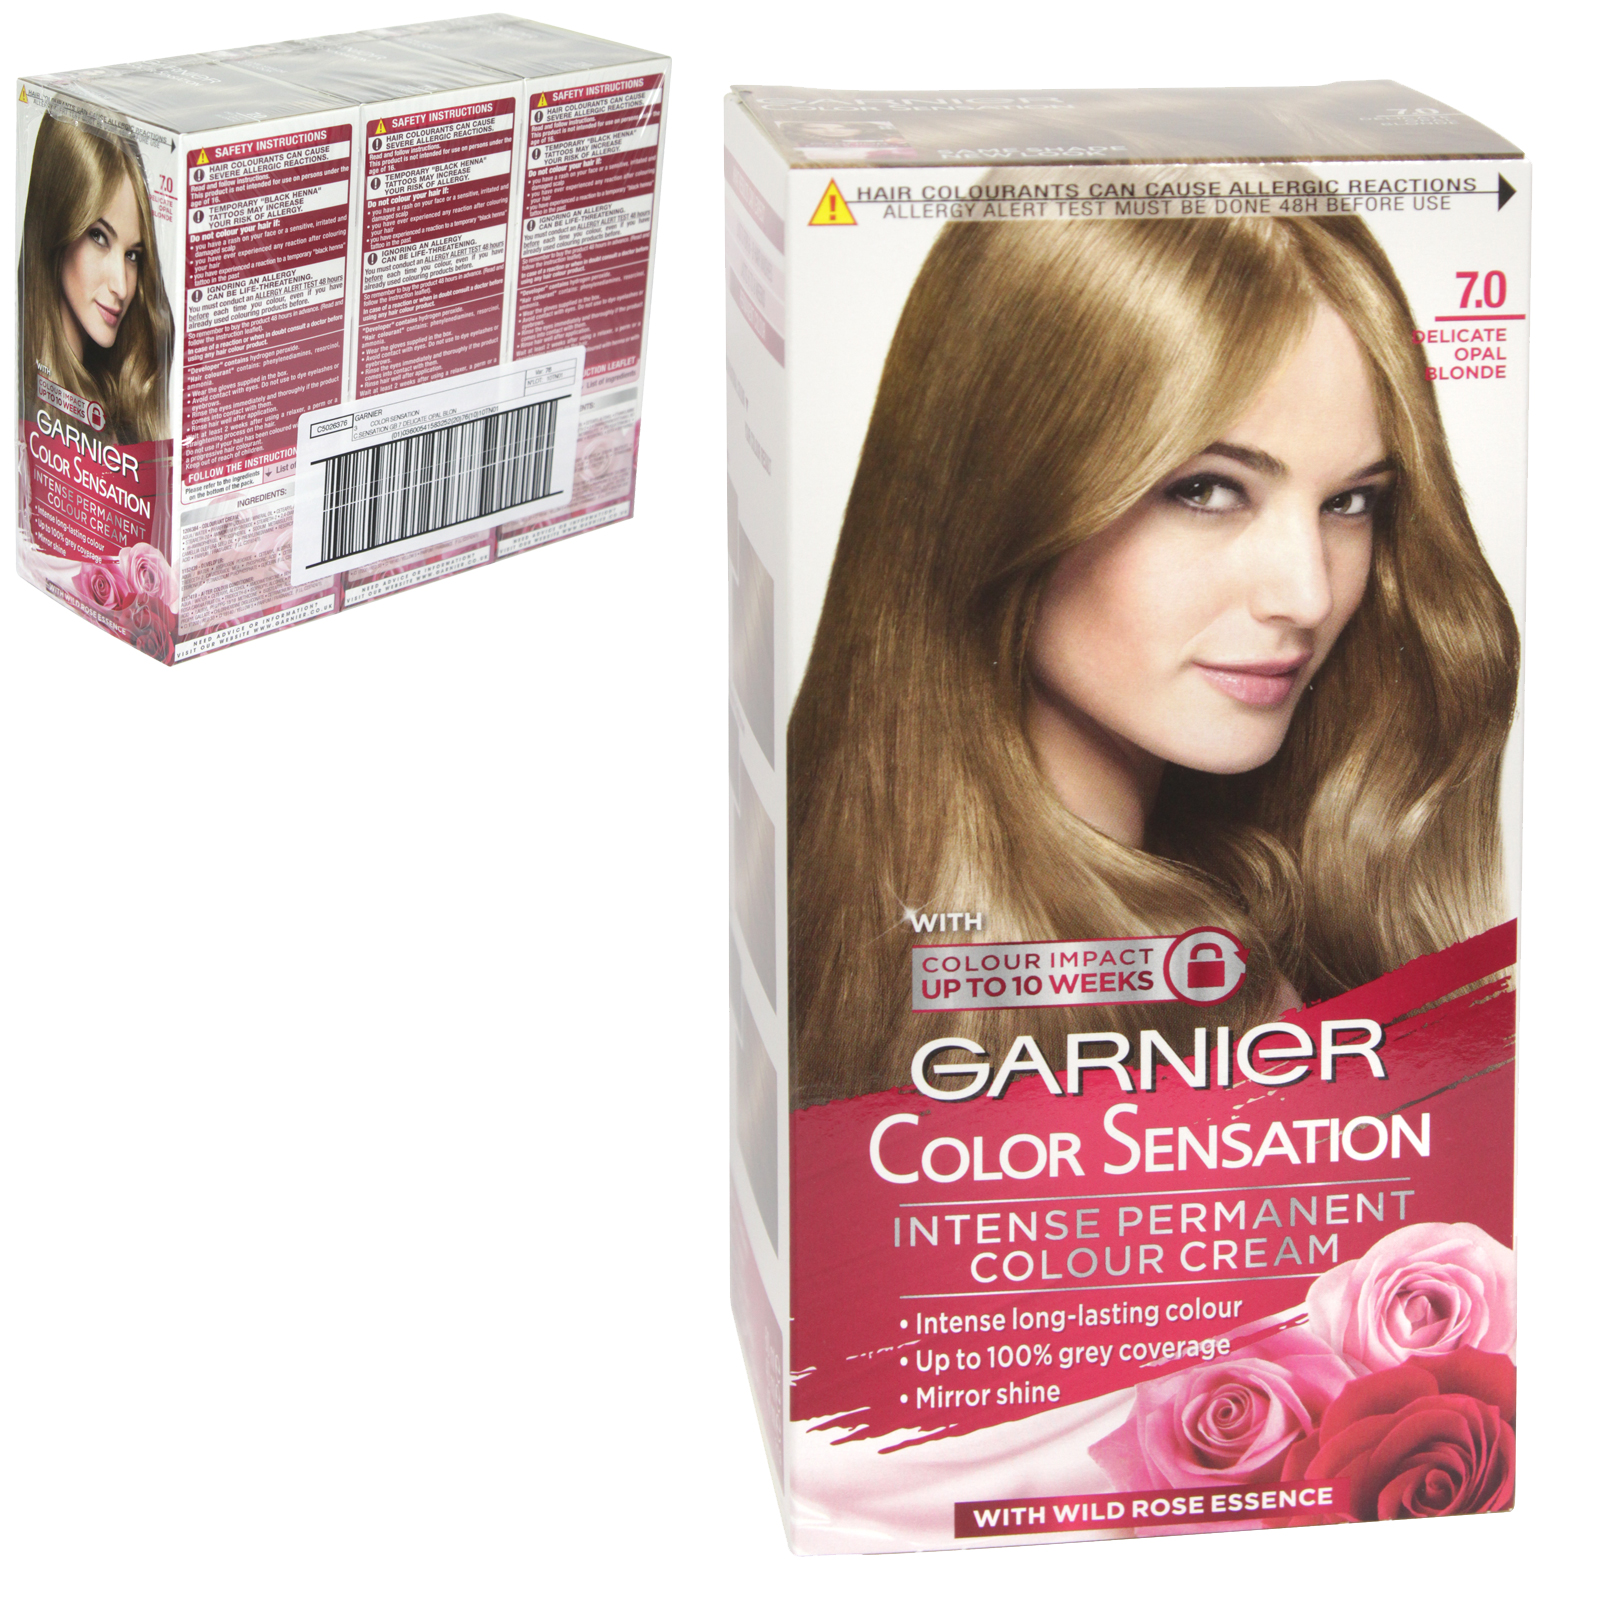 GARNIER HAIR COLOUR - DELICATE OPAL BLONDE 7 - X3